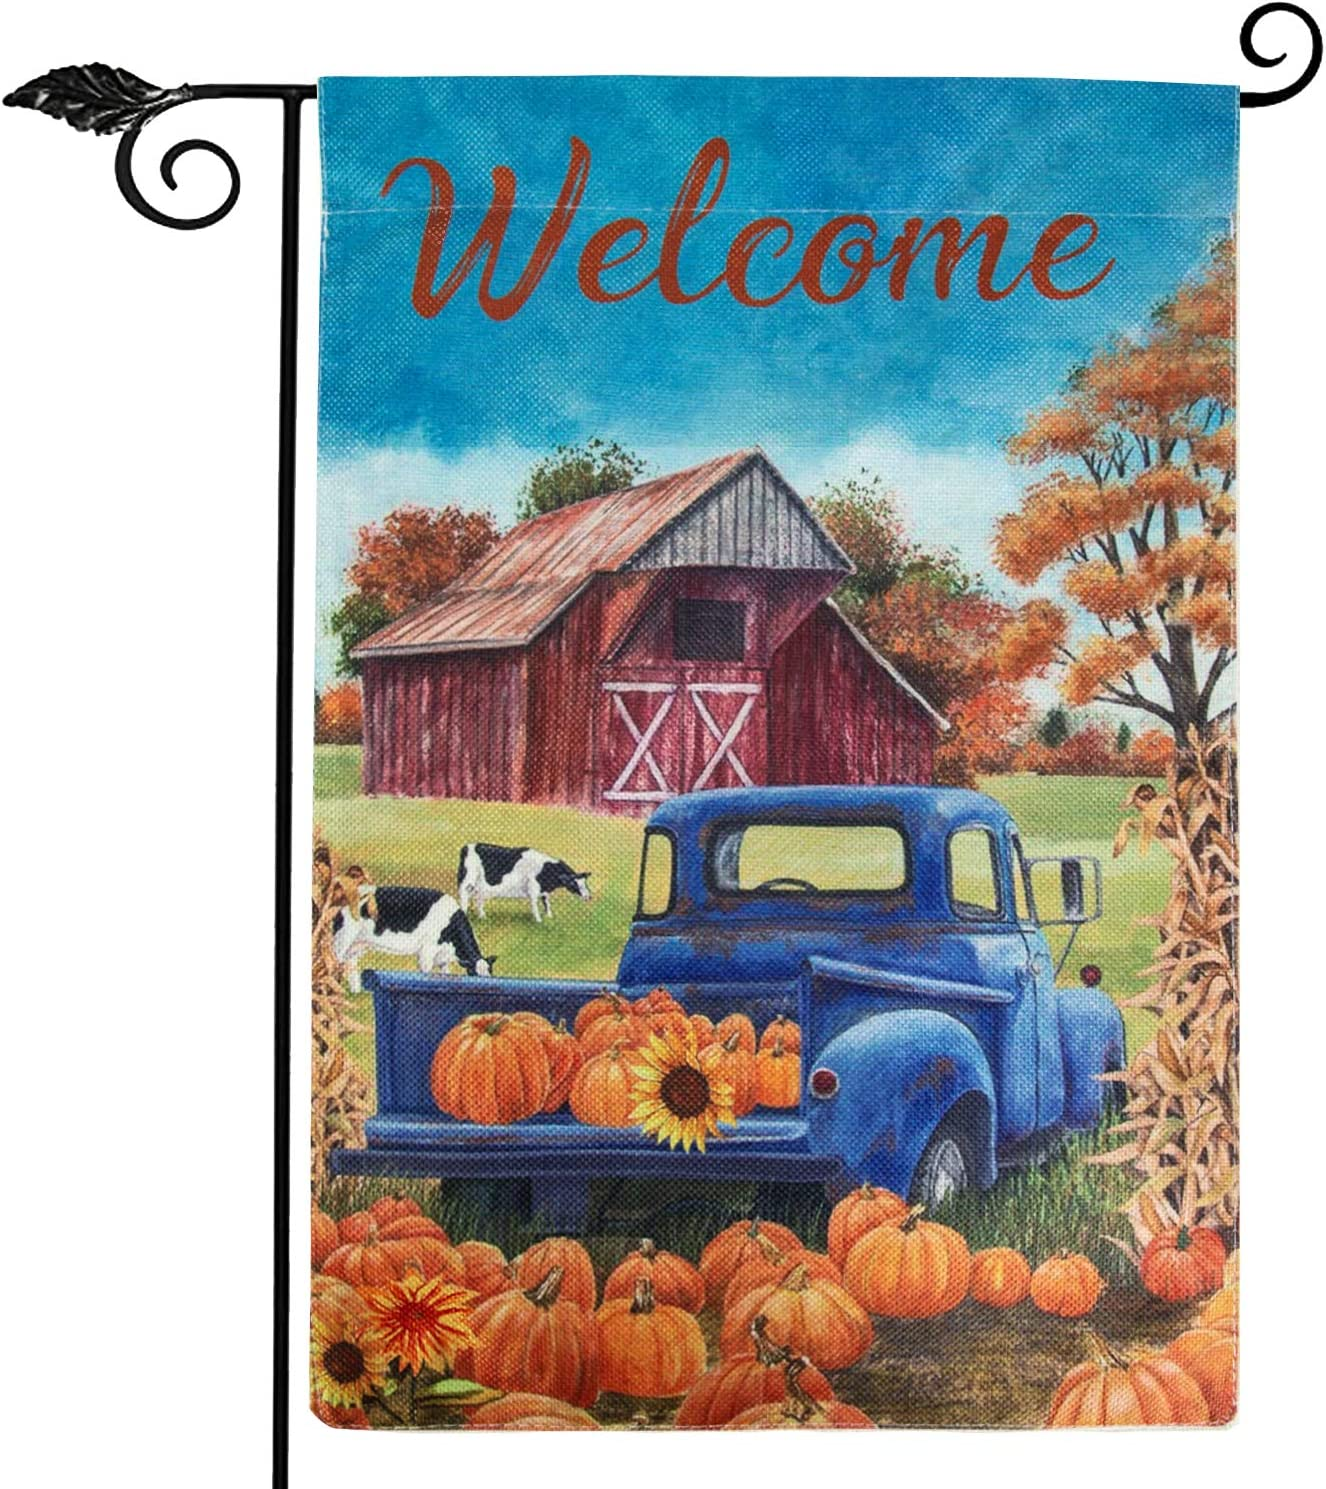 Farmhouse Fall Garden Flag, Vertical Double Sided Welcome Burlap Thanksgiving Flag with Farm Truck Harvest Pumpkin Sunflowers Yard Decorations for Atumn and Thanksgiving Day 12.5x18